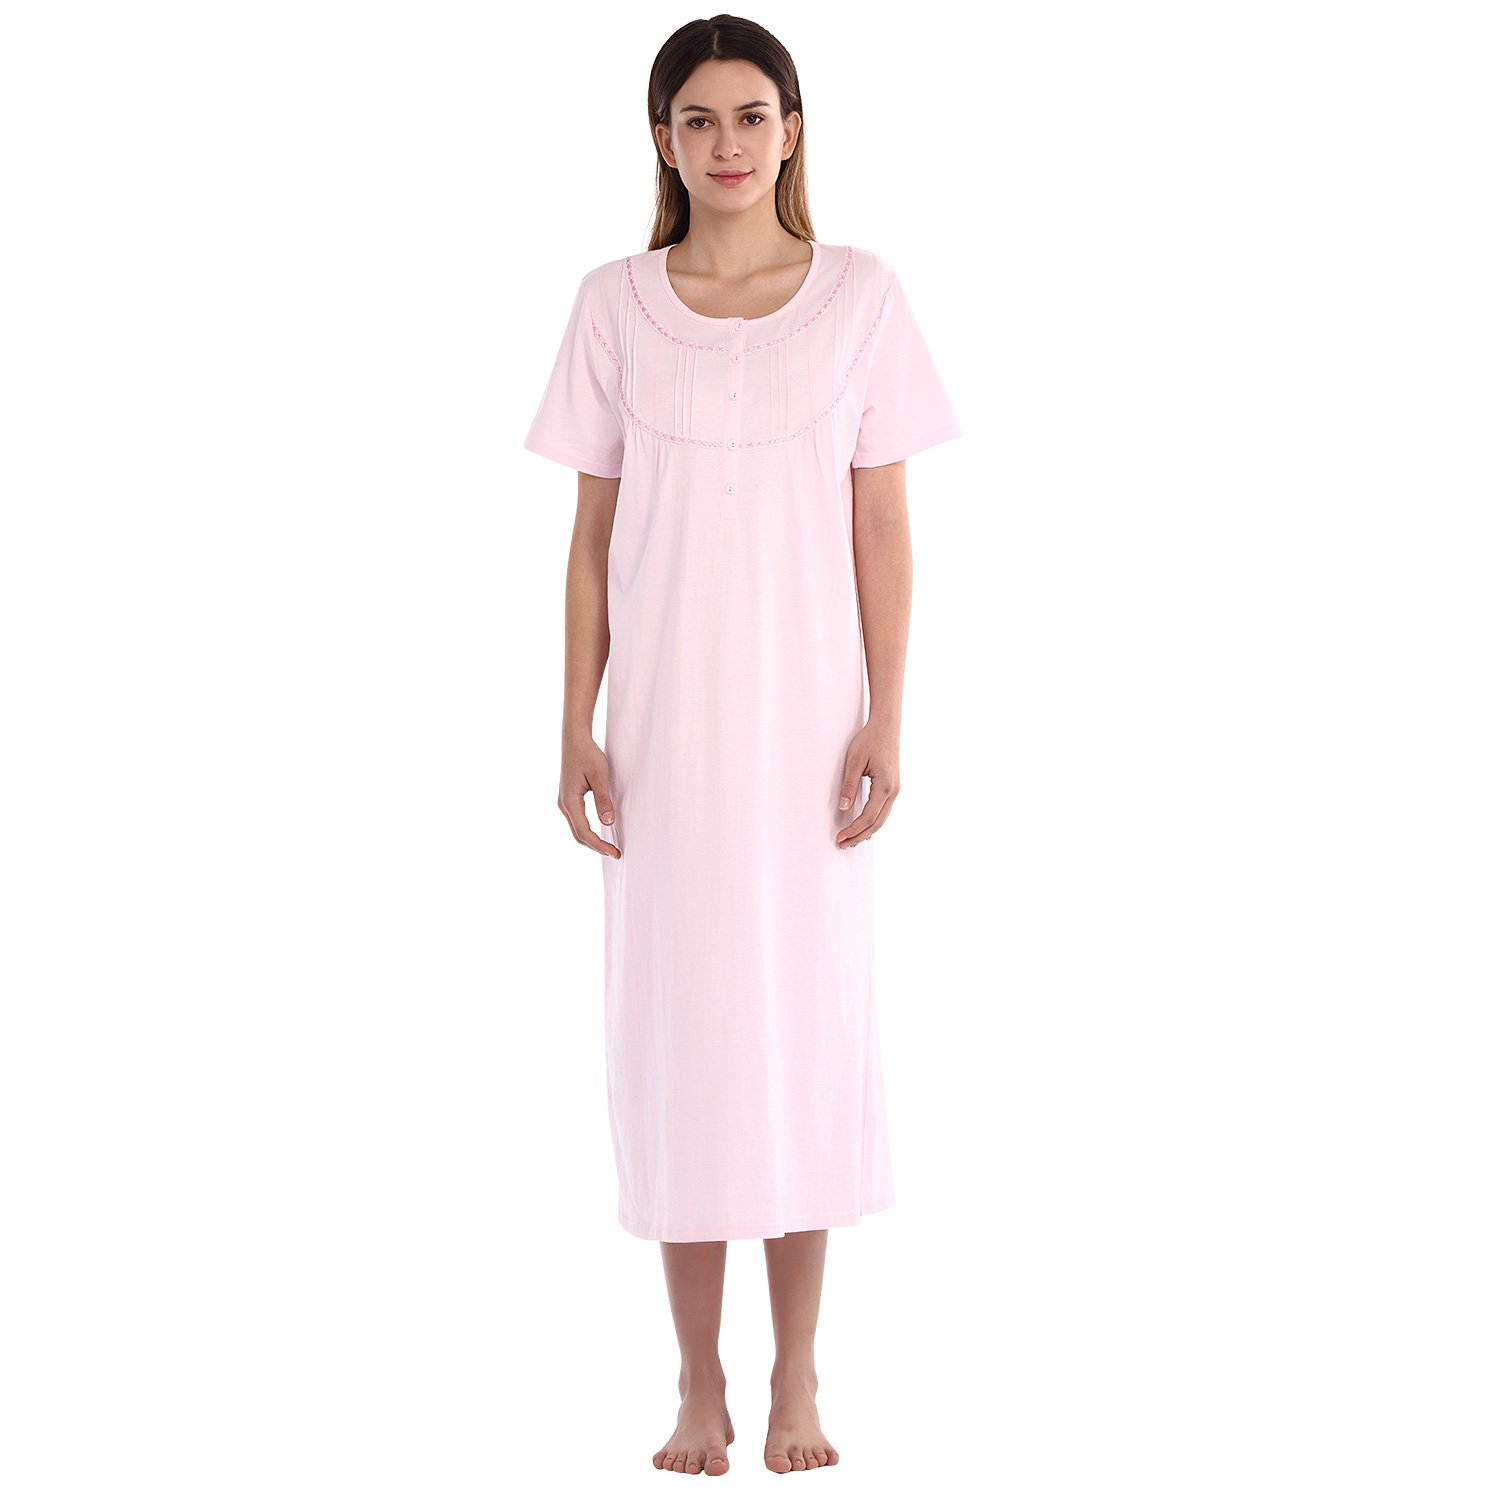 557a5ed57f7 STYLE - This style is a short sleeve solid long nightgown which made from  100% cotton knitted fabric. The fabric is lightweight and breathable